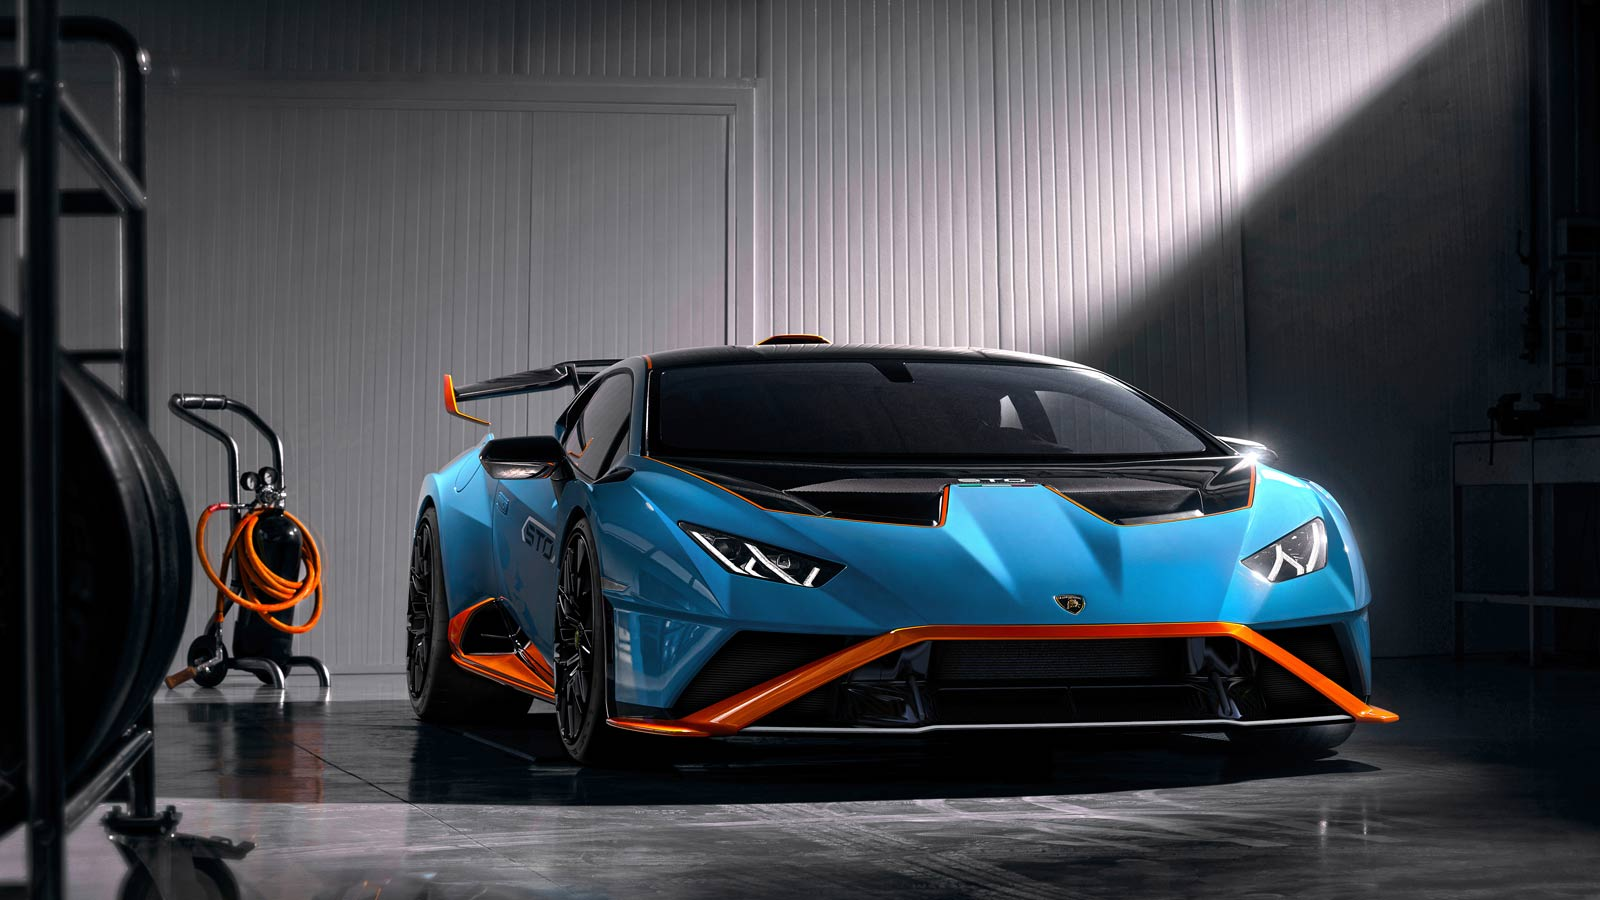 Lamborghini Huracan STO - From racetrack to road